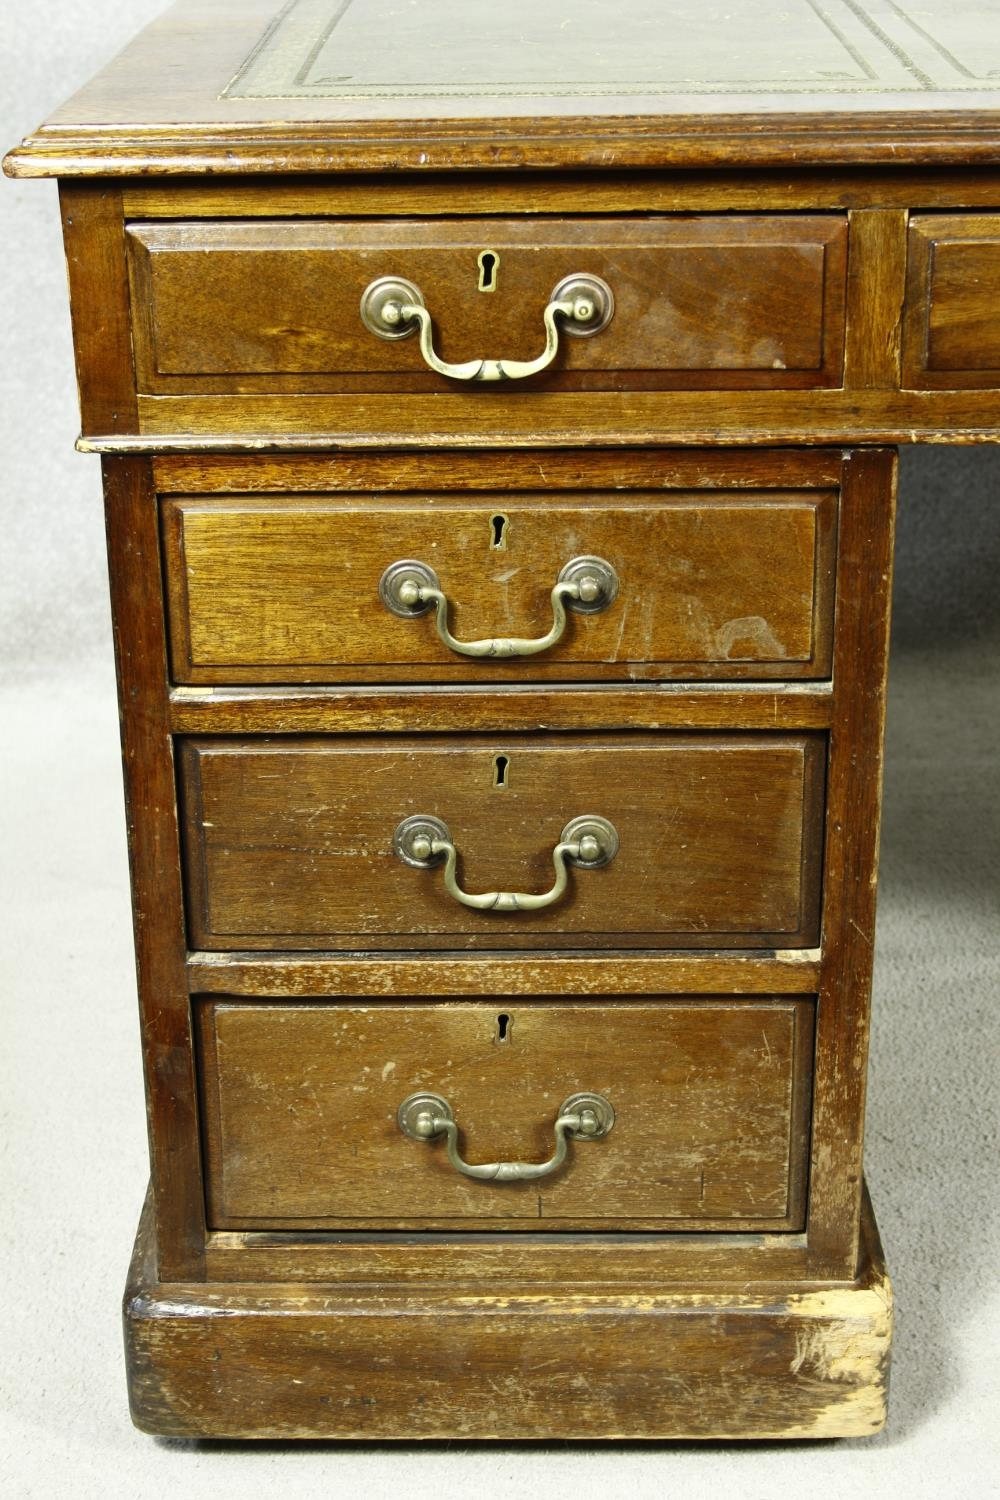 A C.1900 mahogany three section partner's pedestal desk with inset tooled leather top above an - Image 10 of 20